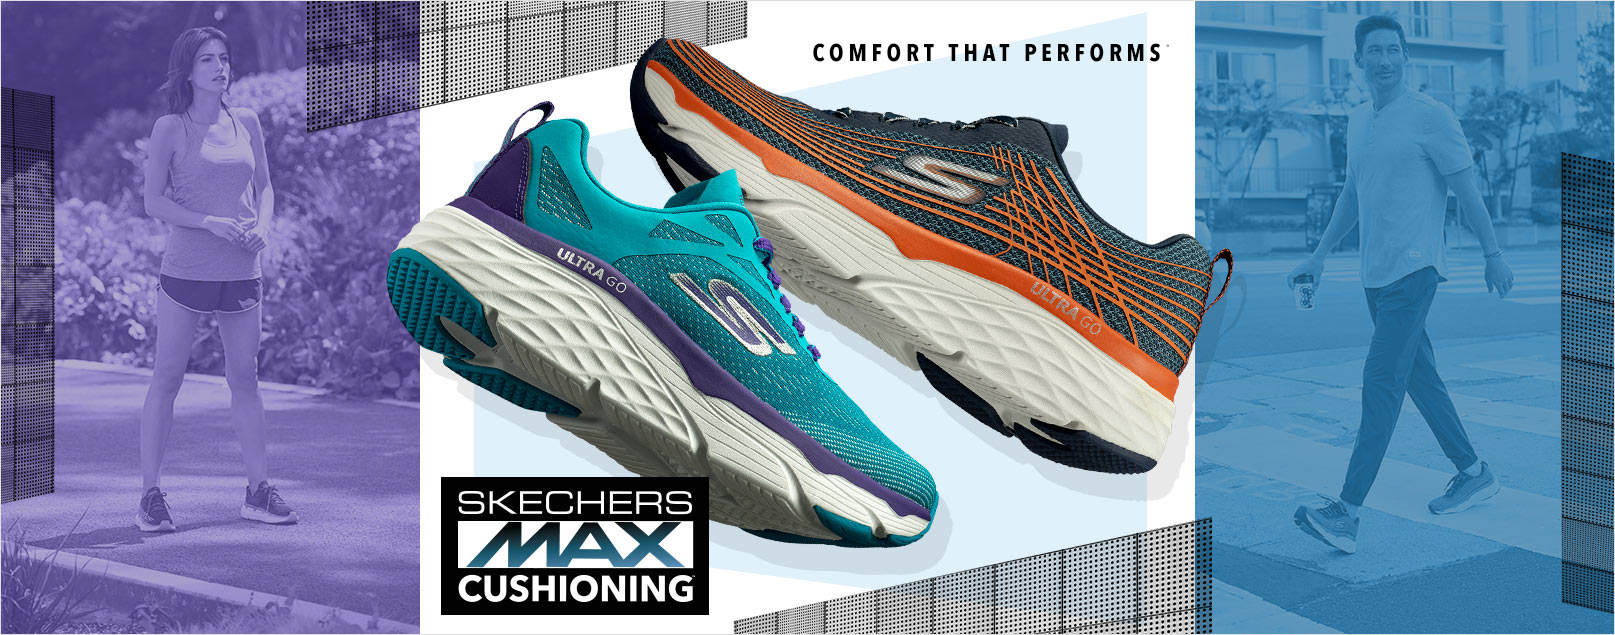 Get the maximum amount of comfort and support from the new Skechers Max Cushioning shoe.  An athletic running and walking comfort design with lightweight ULTRA GO cushioning for long lasting comfort.